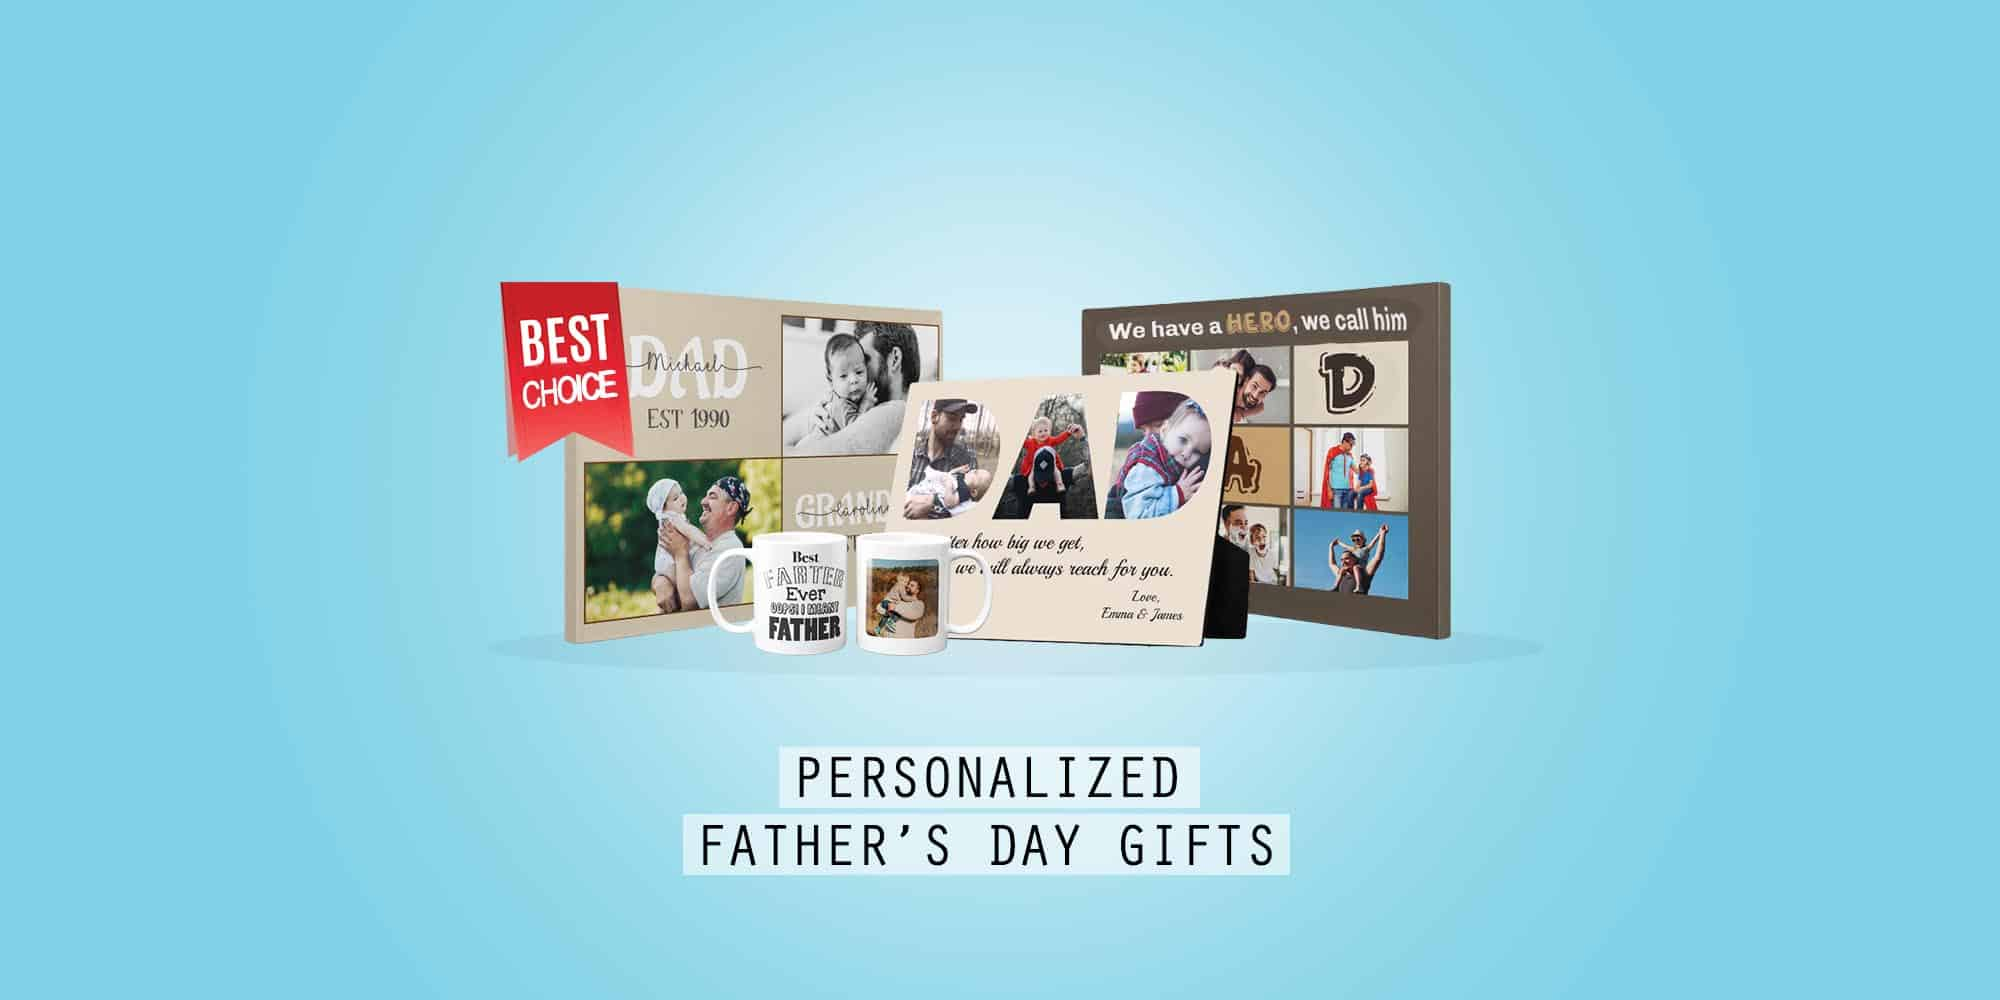 40+ Personalized Gifts for Father's Day to Make Him Feel Extra Special (2021)